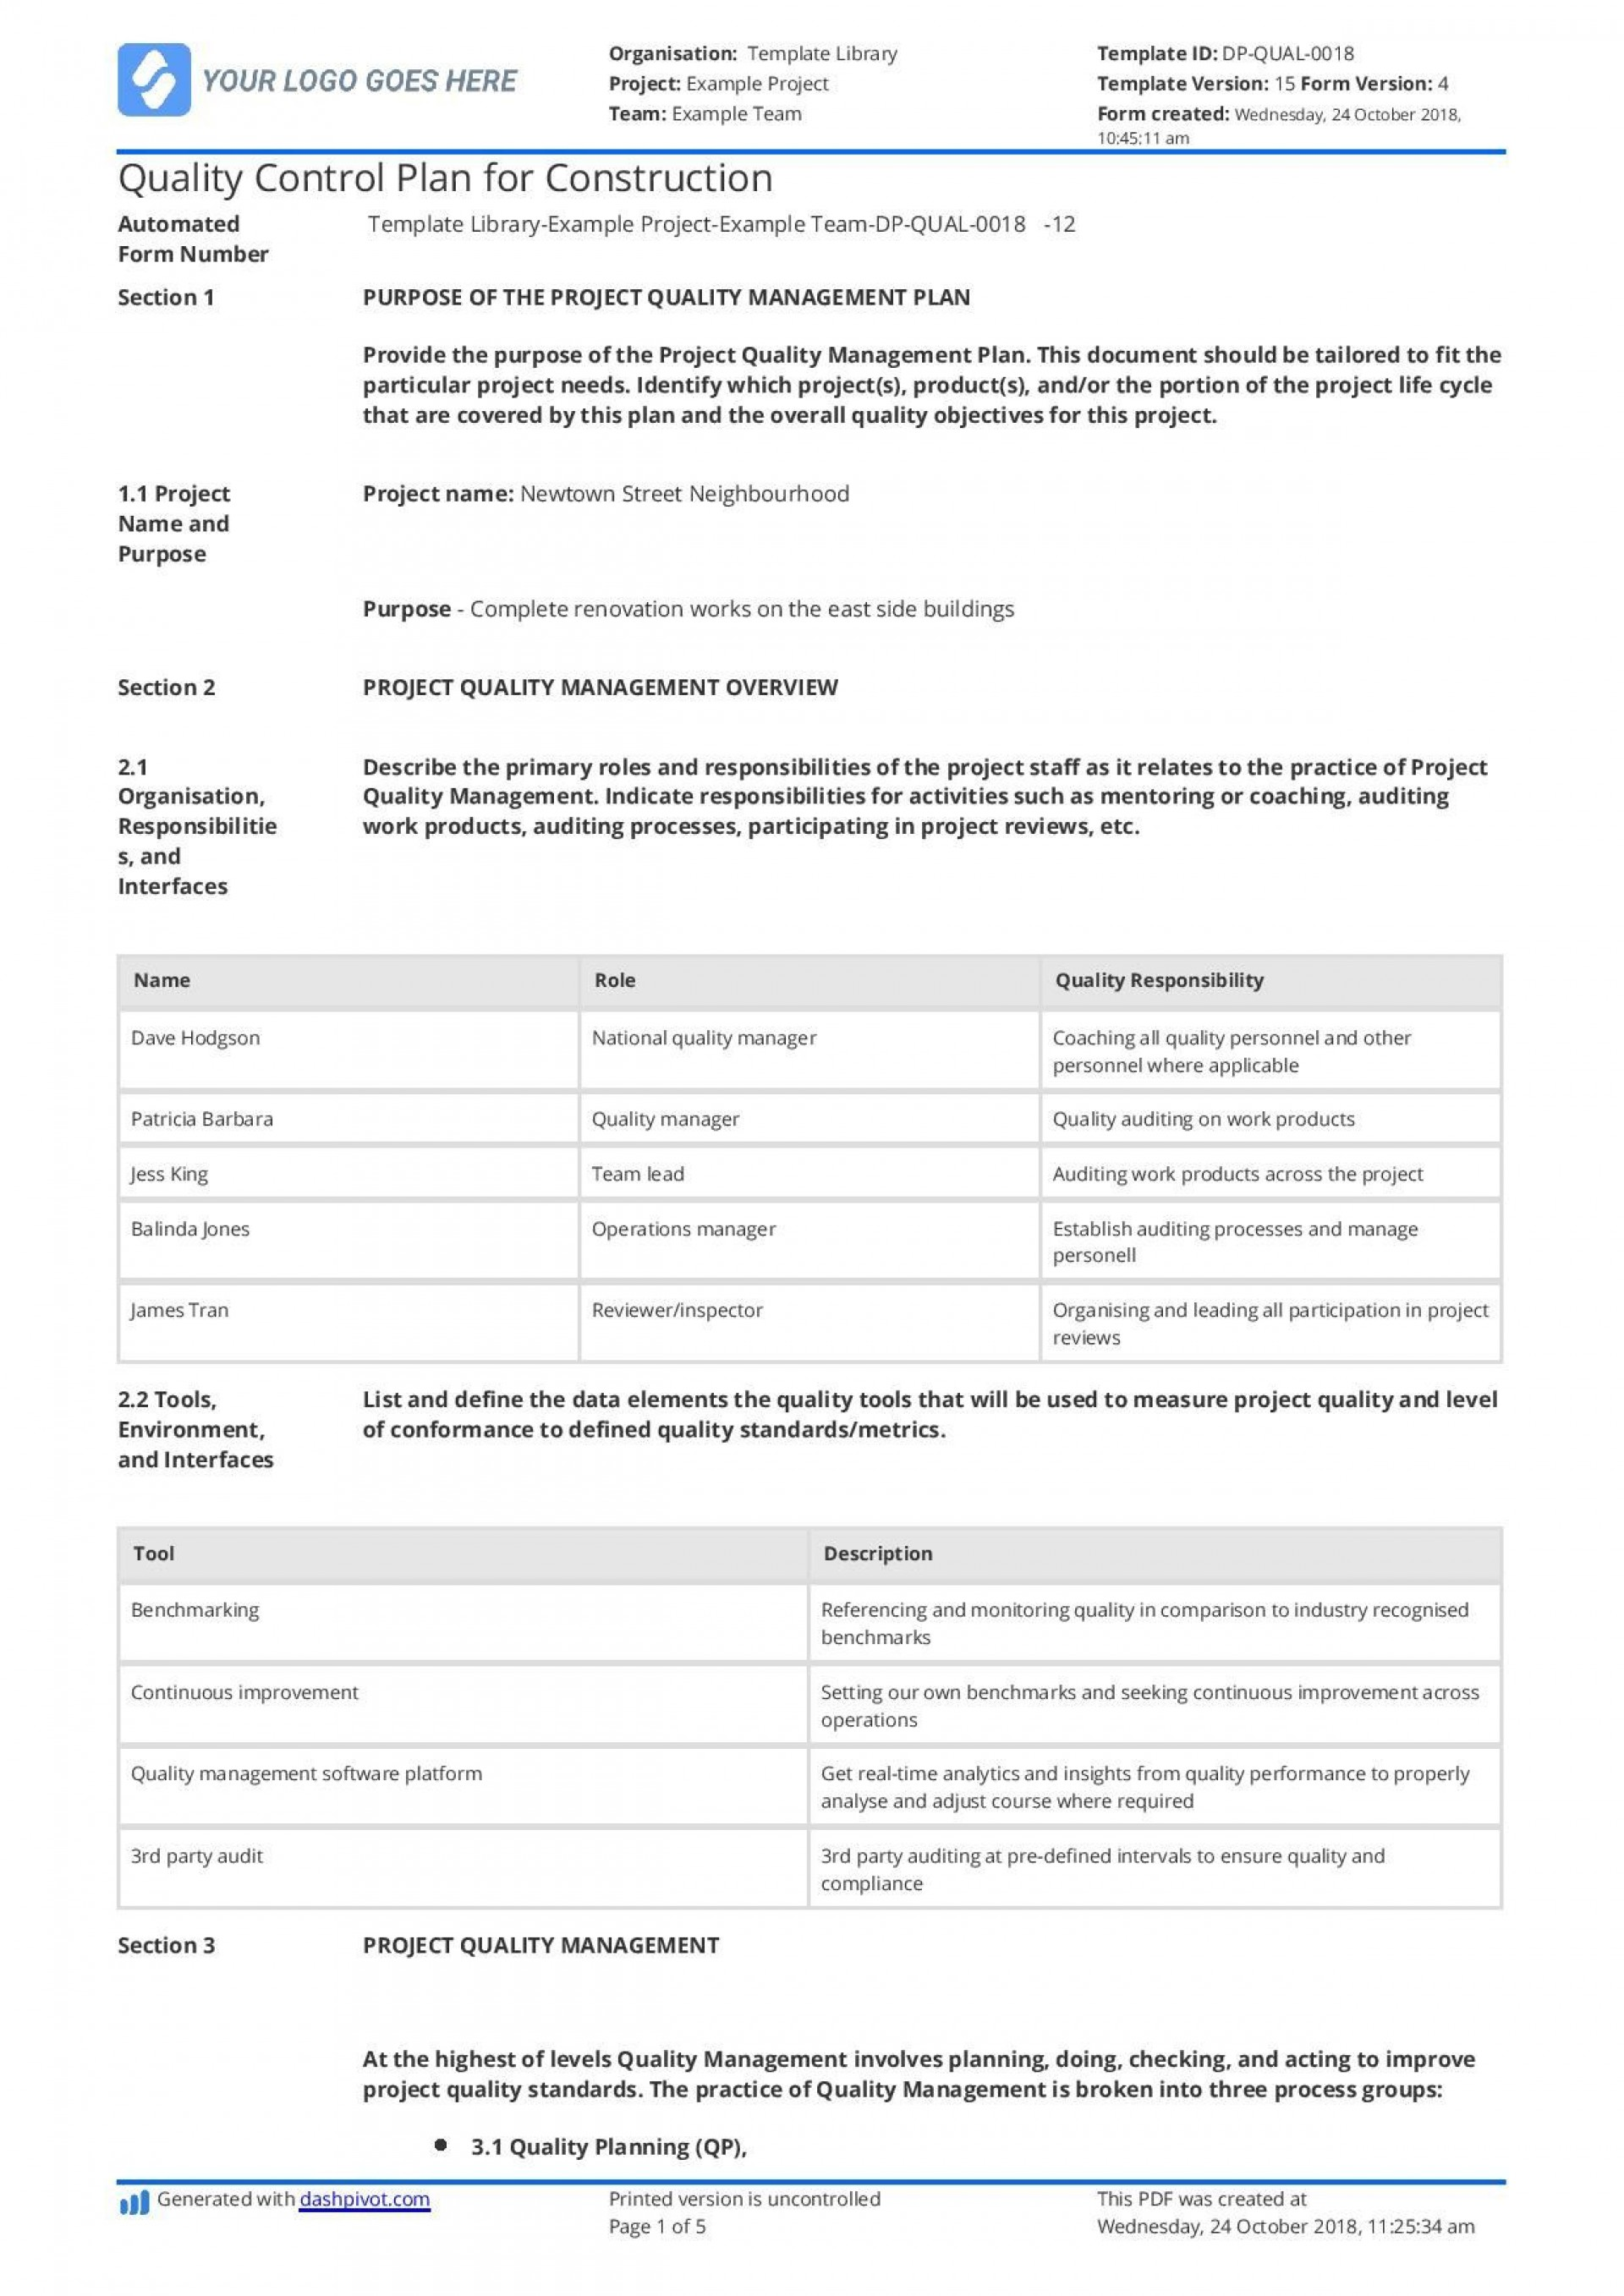 003 Awesome Project Quality Management Plan Template Pdf Idea  Sample1920